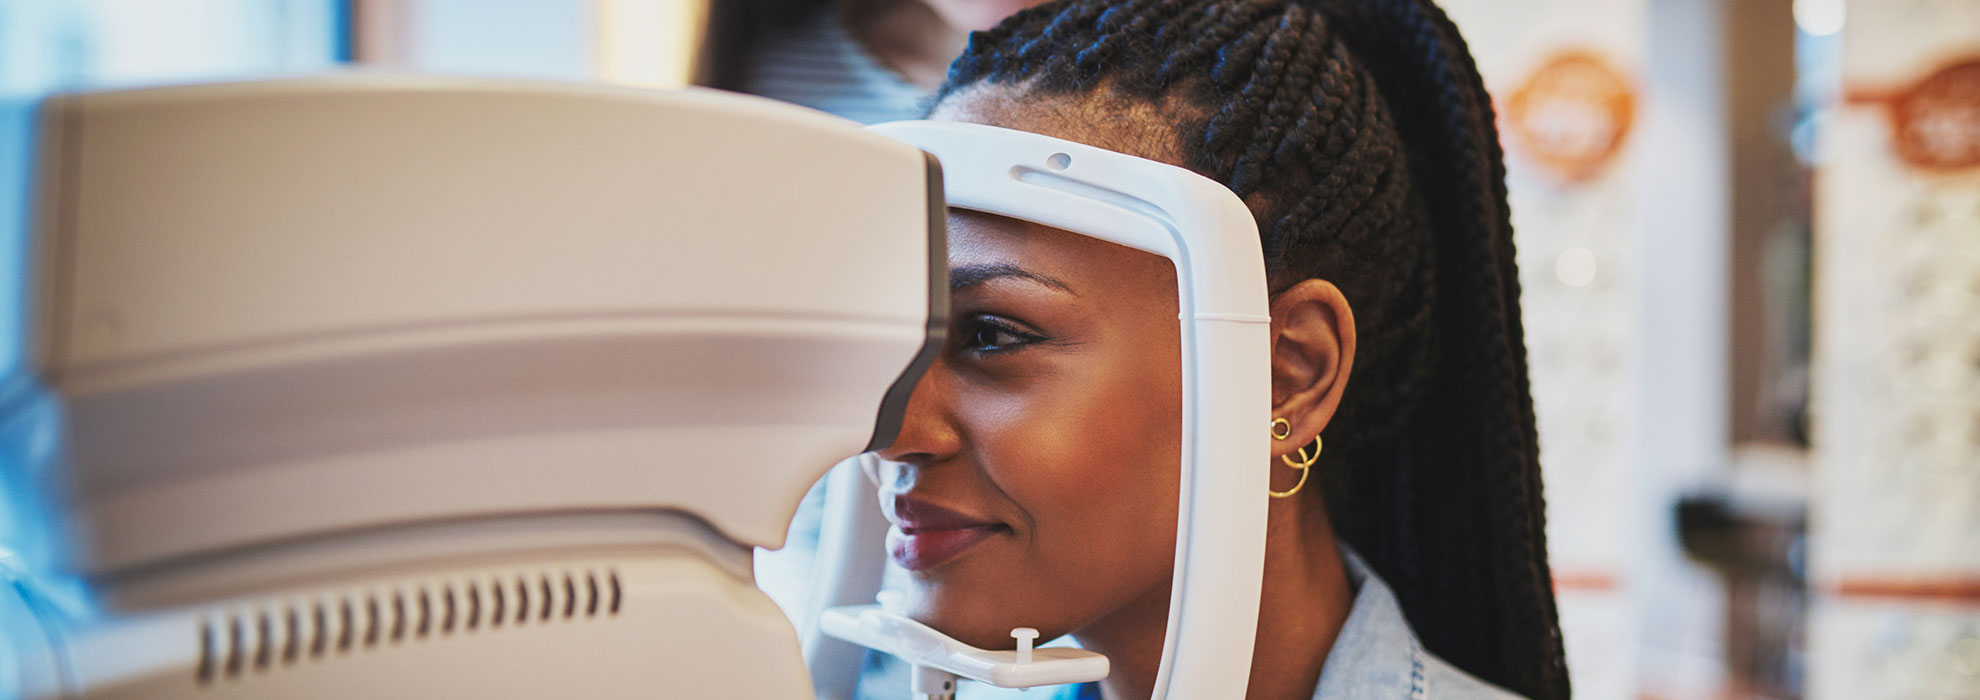 Black female during an eye exam